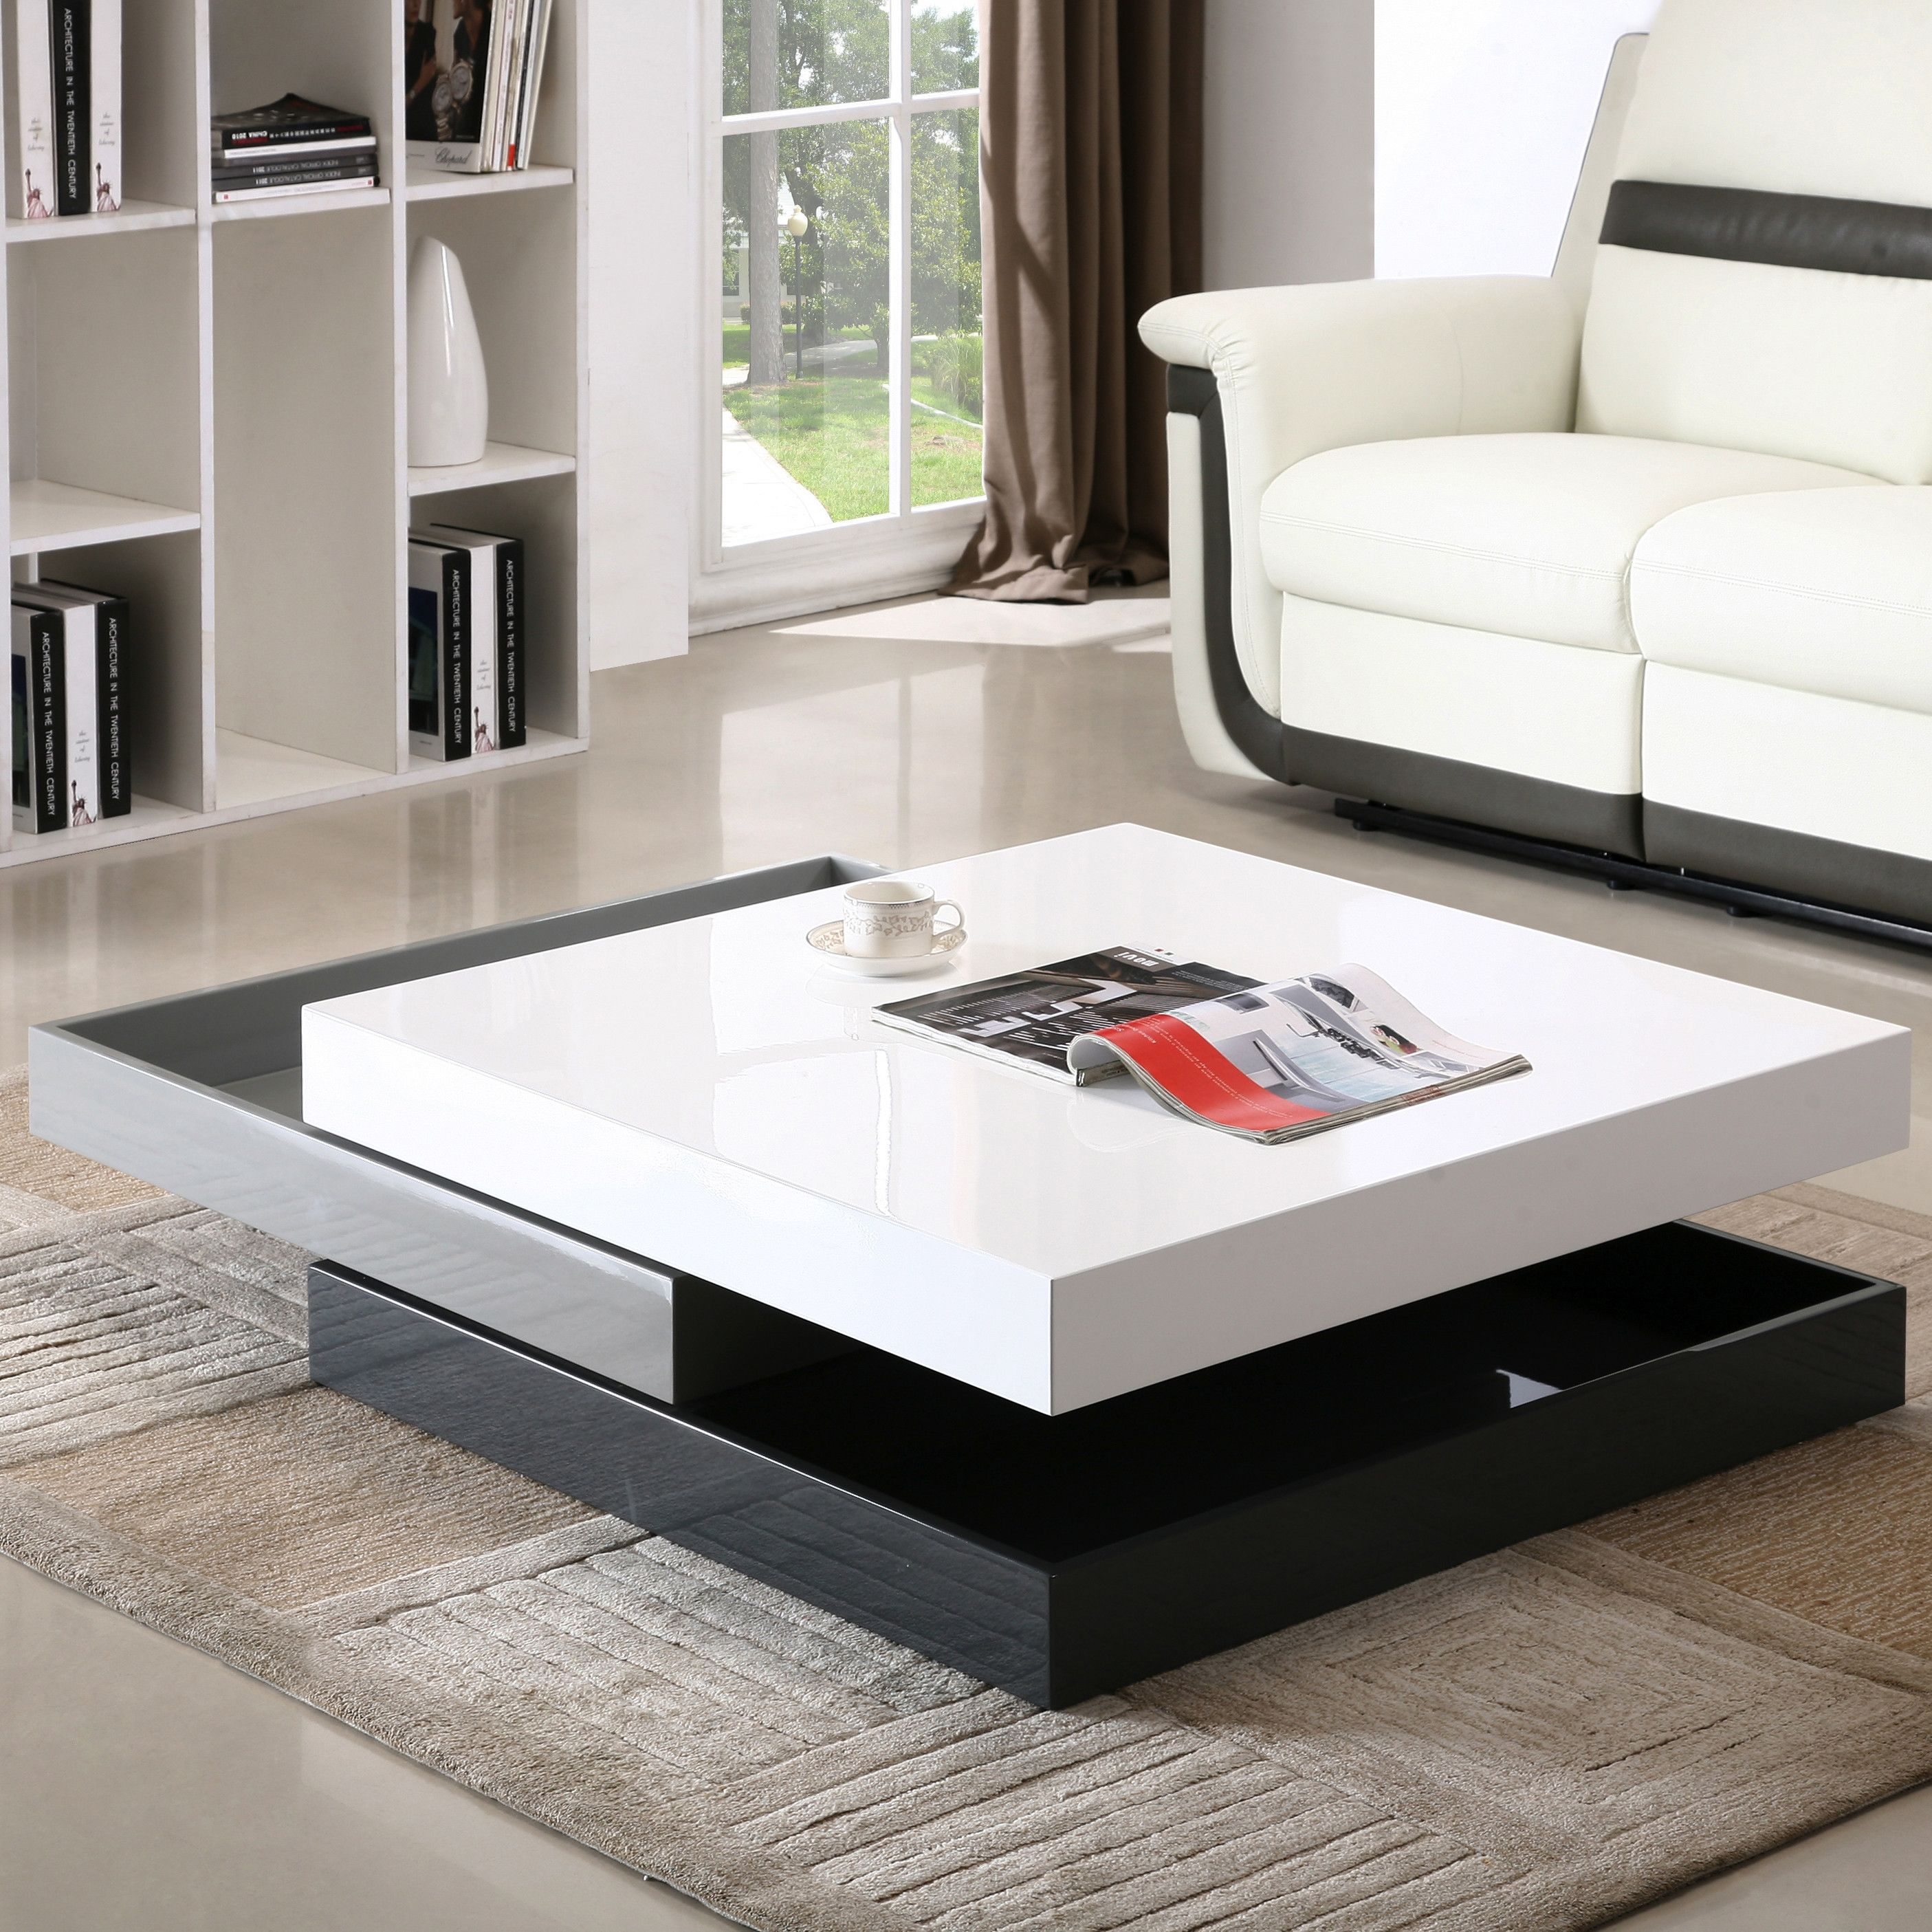 Mcfarland Block Coffee Table With Storage Glass Table Living